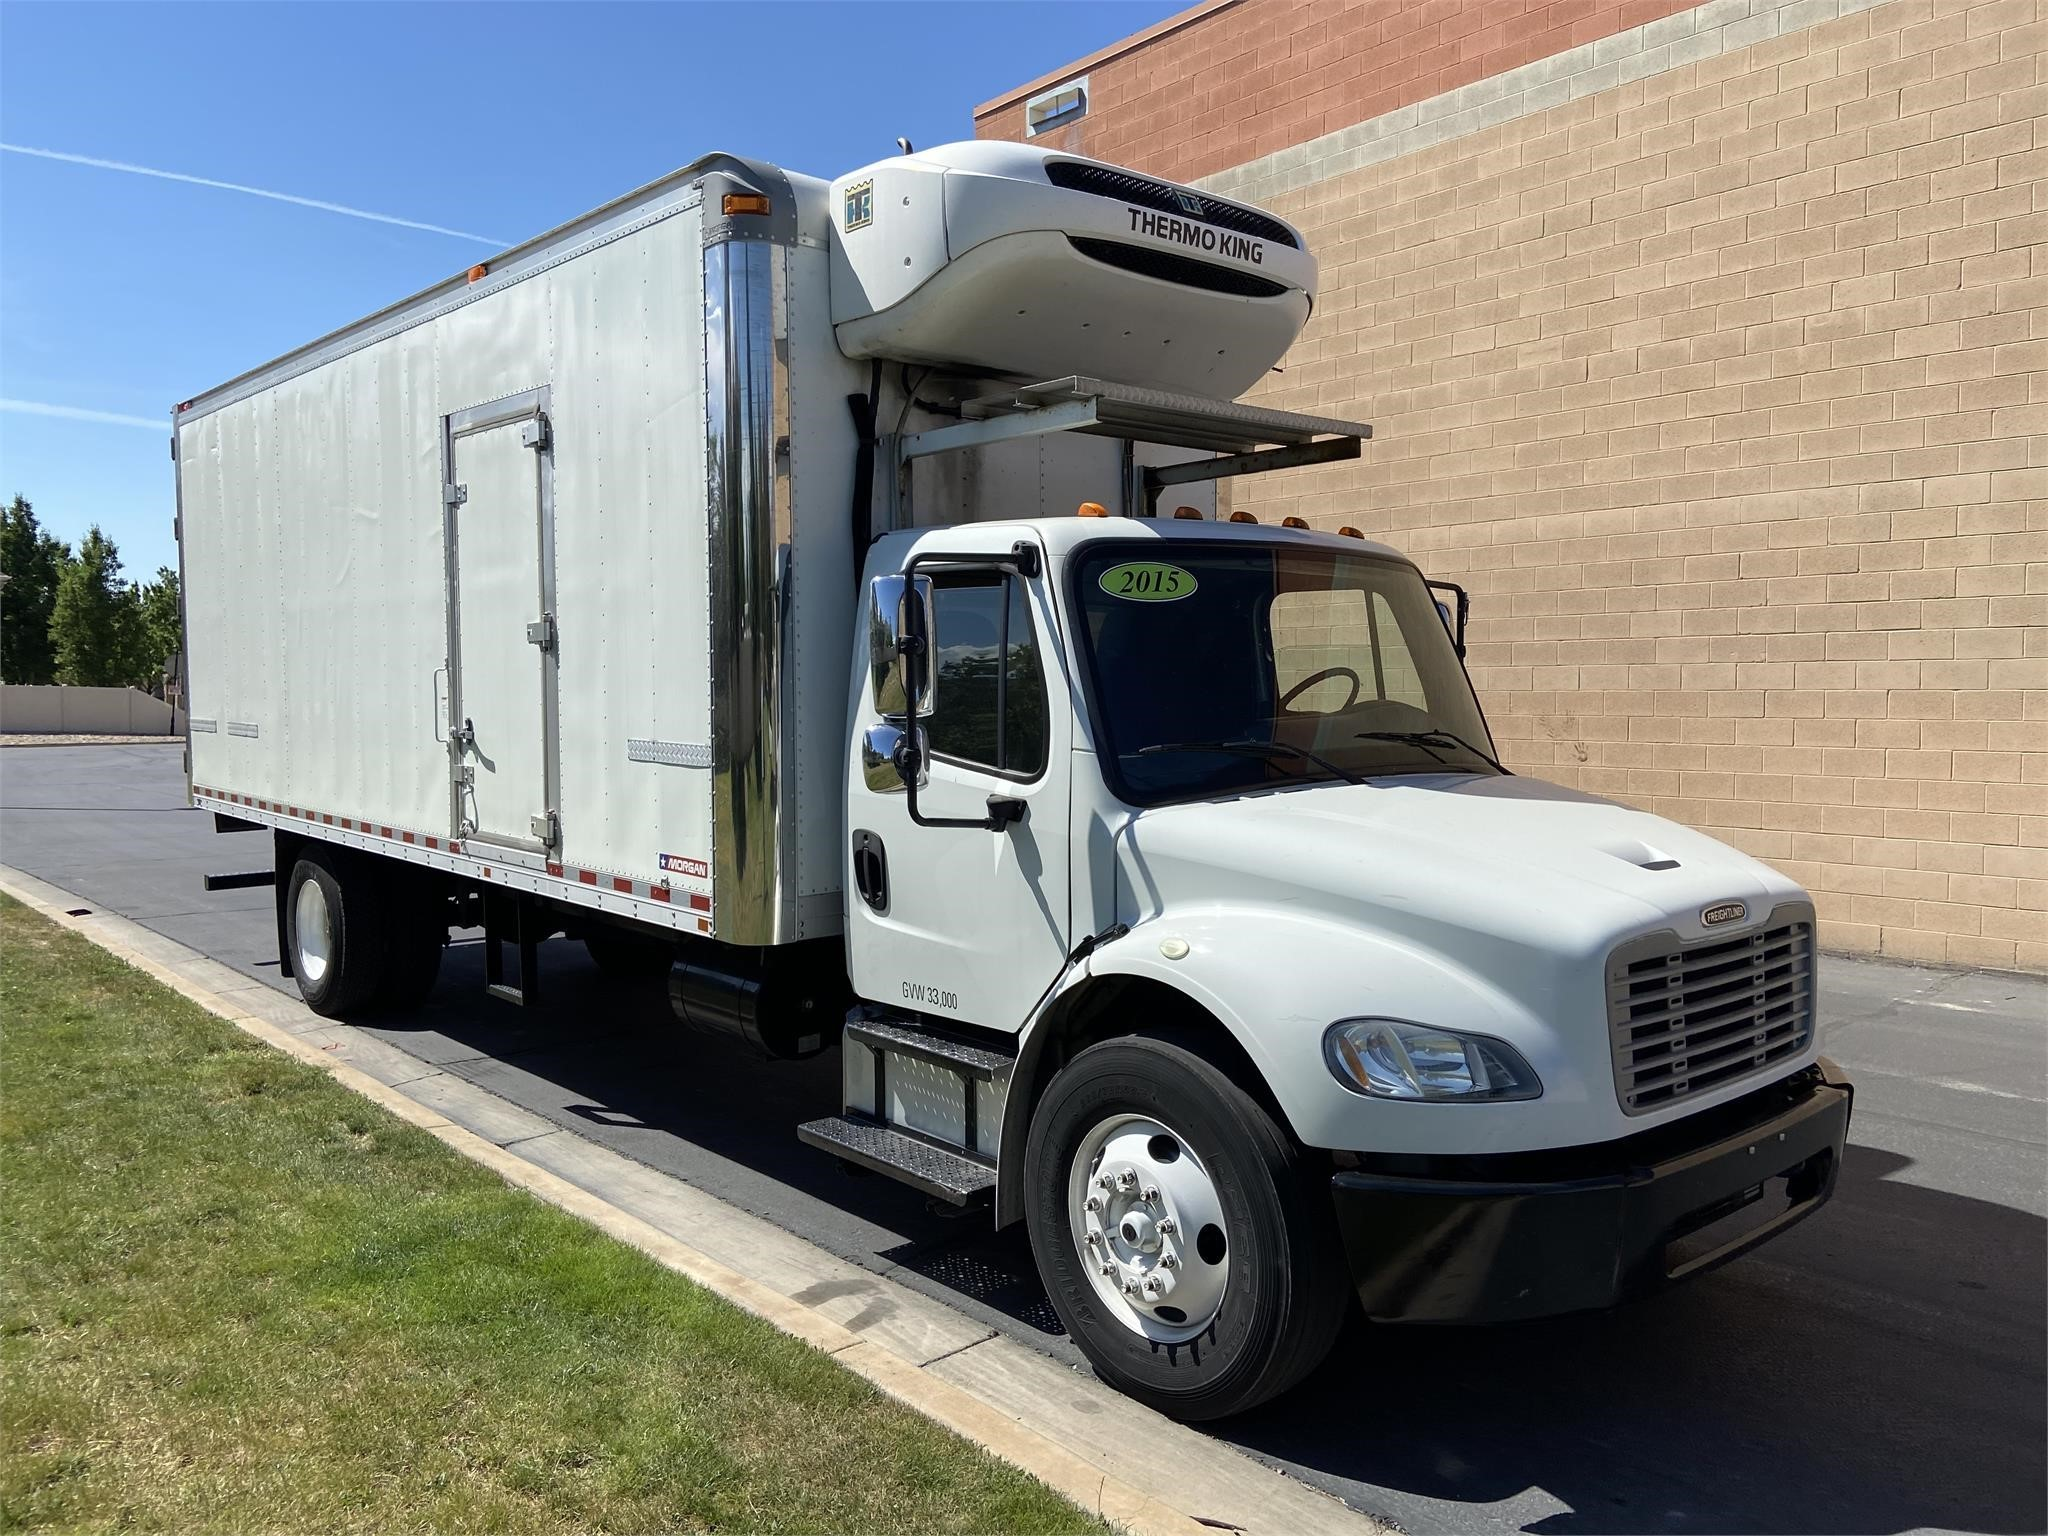 Used, 2015, FREIGHTLINER, BUSINESS CLASS M2 106, Reefer/Refrigerated Truck